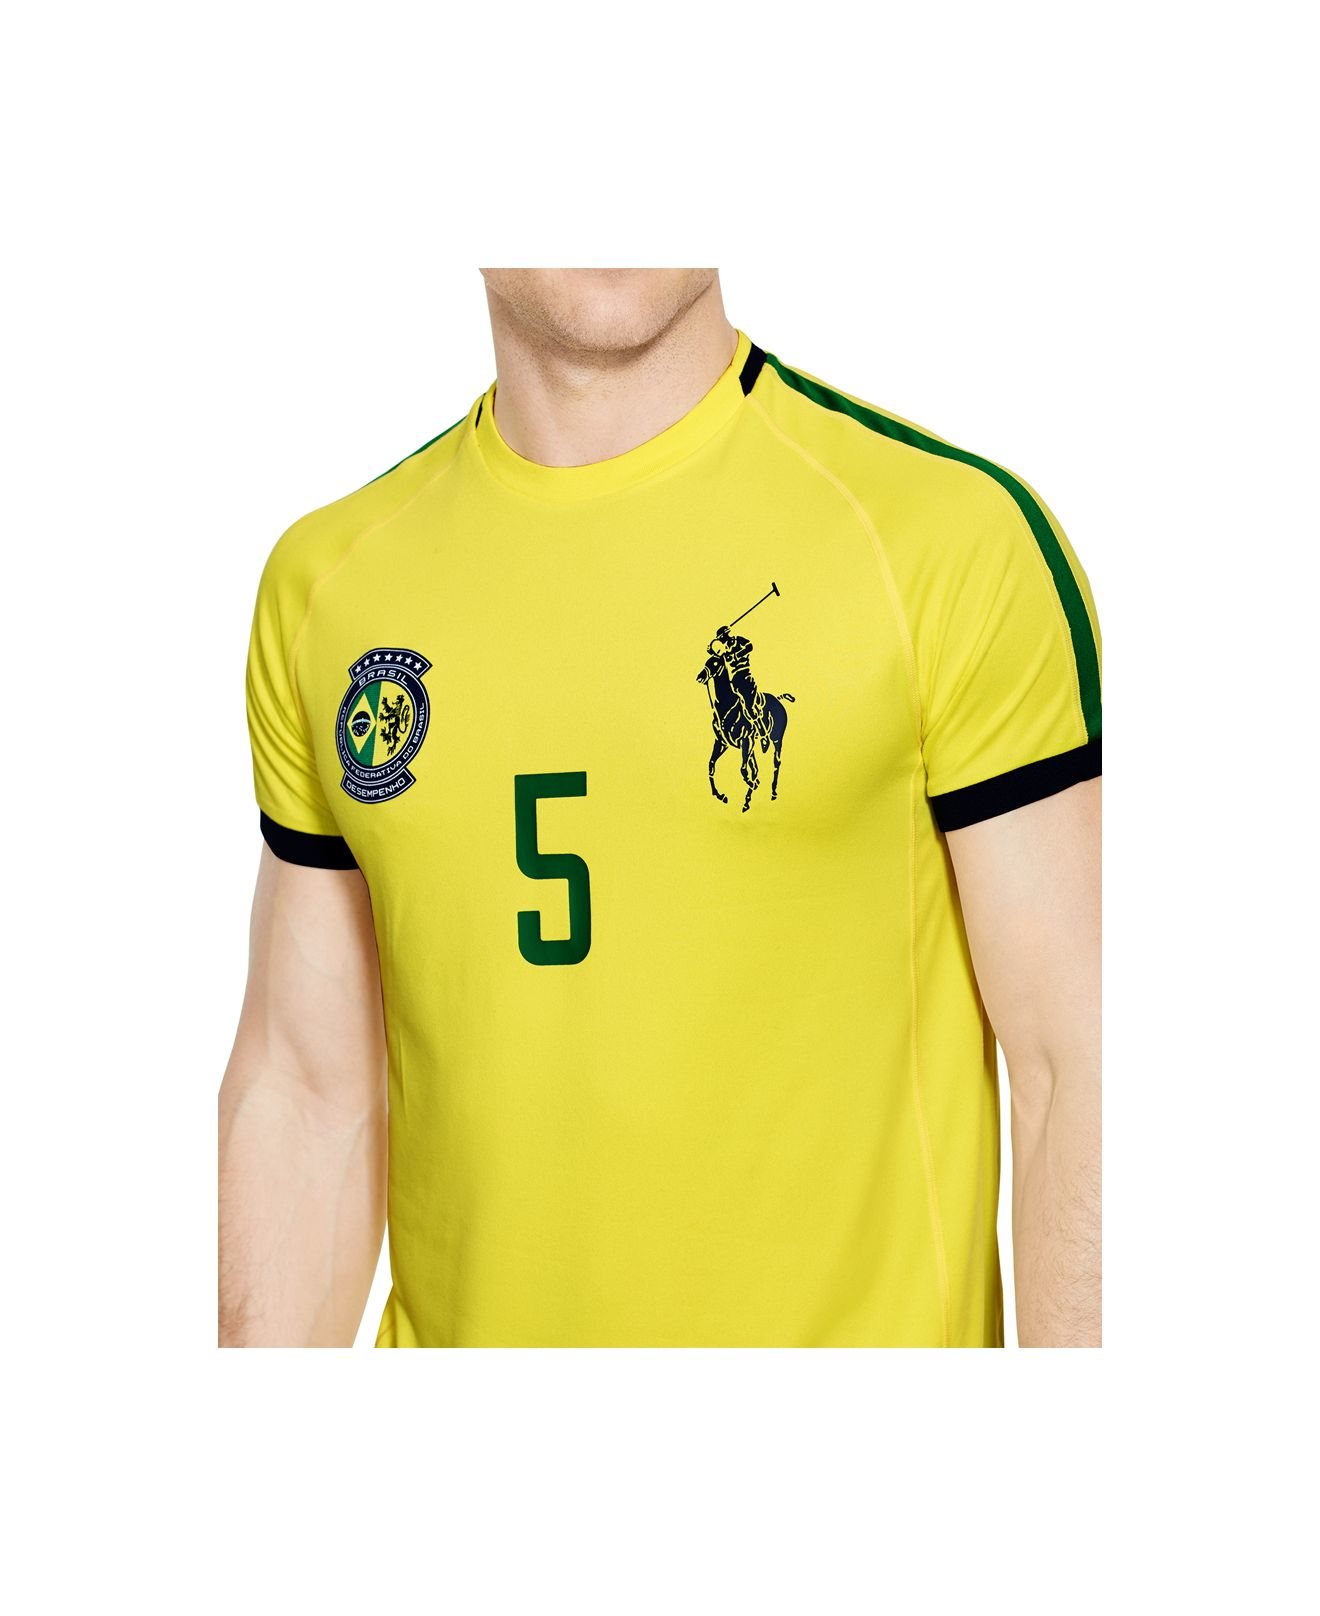 69288cda61c38 Lyst - Polo Ralph Lauren Polo Sport Brasil Performance Crew-neck T-shirt in  Yellow for Men